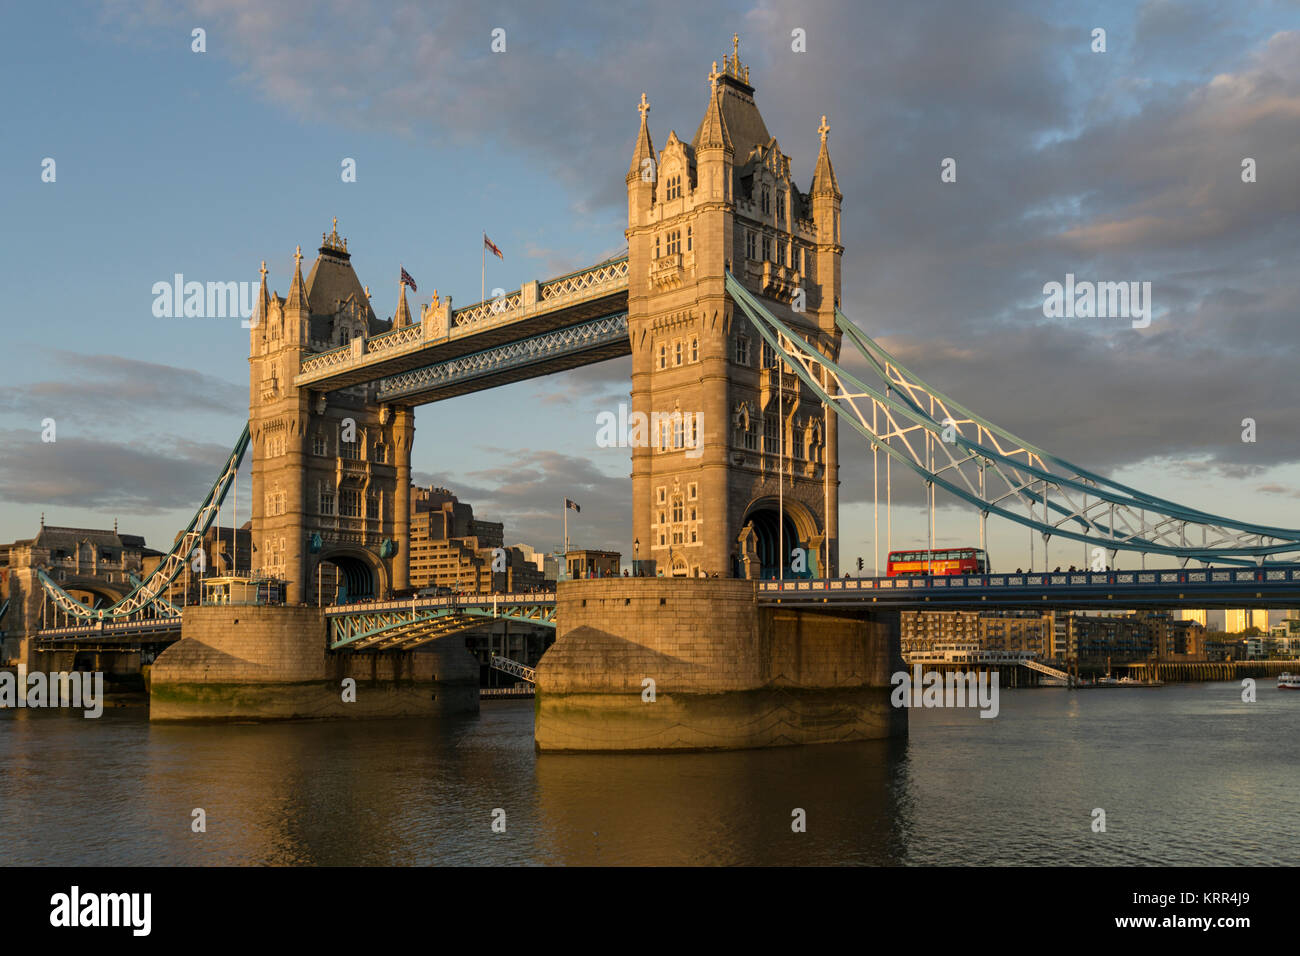 Tower Bridge at sunset, River Thames, London, UK - Stock Image